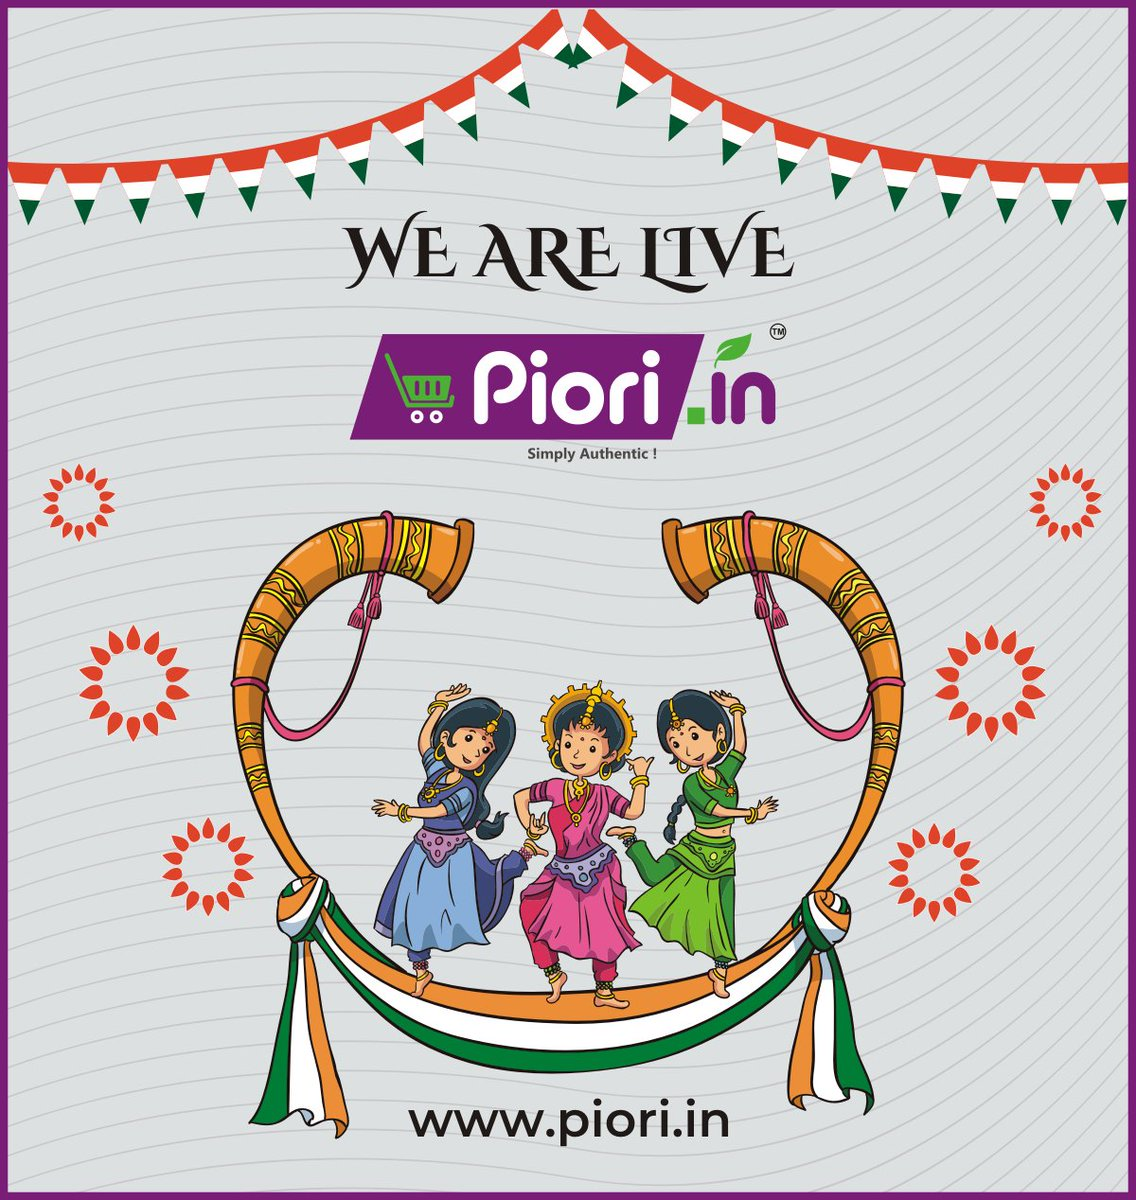 We are Happy to announce that our website https://piori.in/ (Piori Online shopping) is live now. Welcome to the new world of authentic Indian saree collection. #Indiansaree #handloomsaree #authentic #onlineshoping #Shopping #ethnicwear #fabulouslook